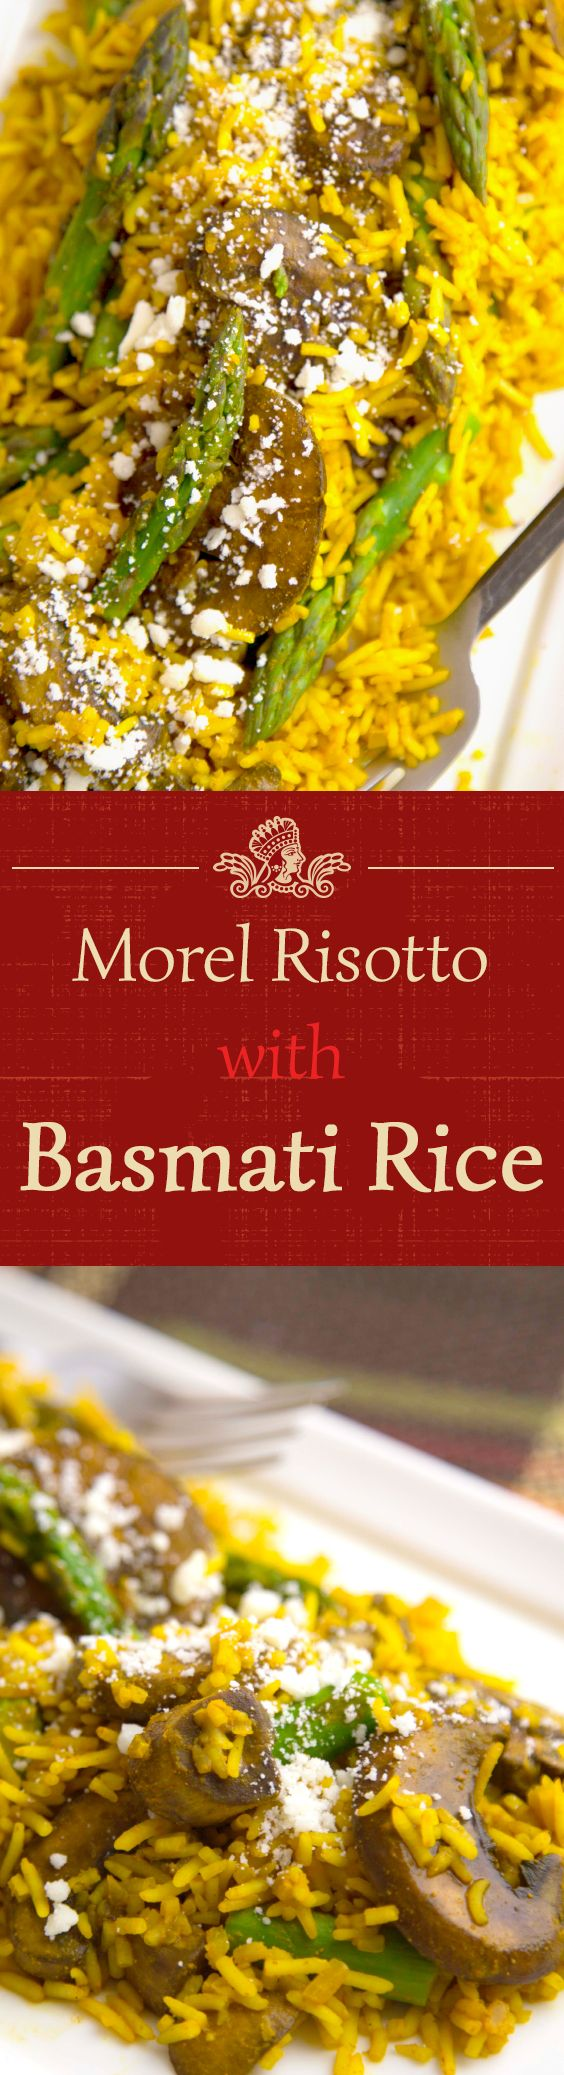 This exciting twist on traditional risotto won't disappoint. Try this Royal Basmati Rice Morel Risotto recipe!